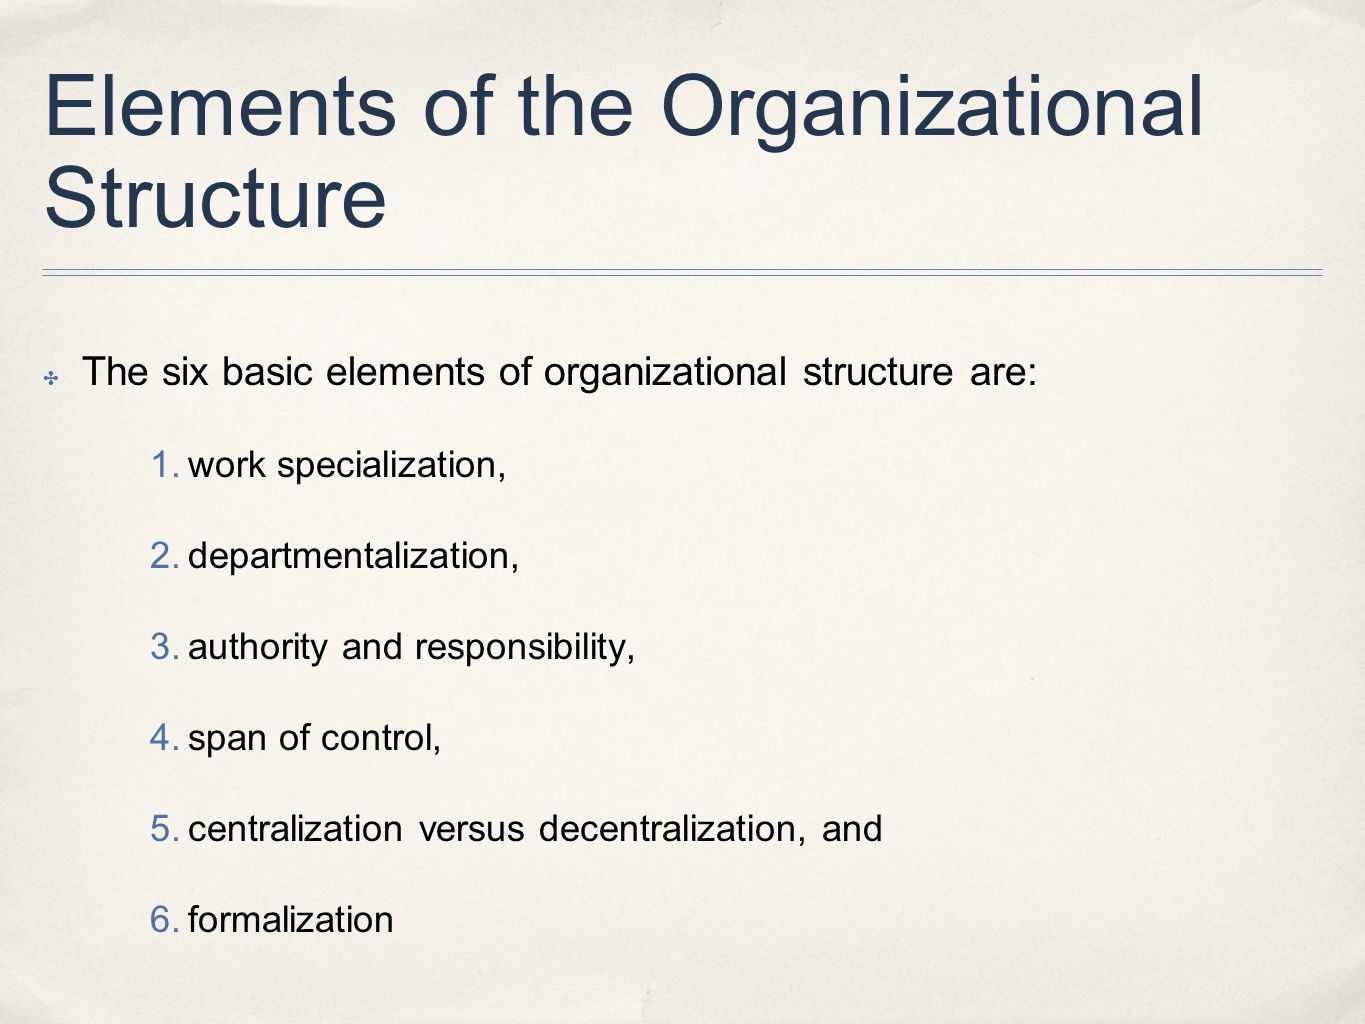 Elements of the Organizational Structure